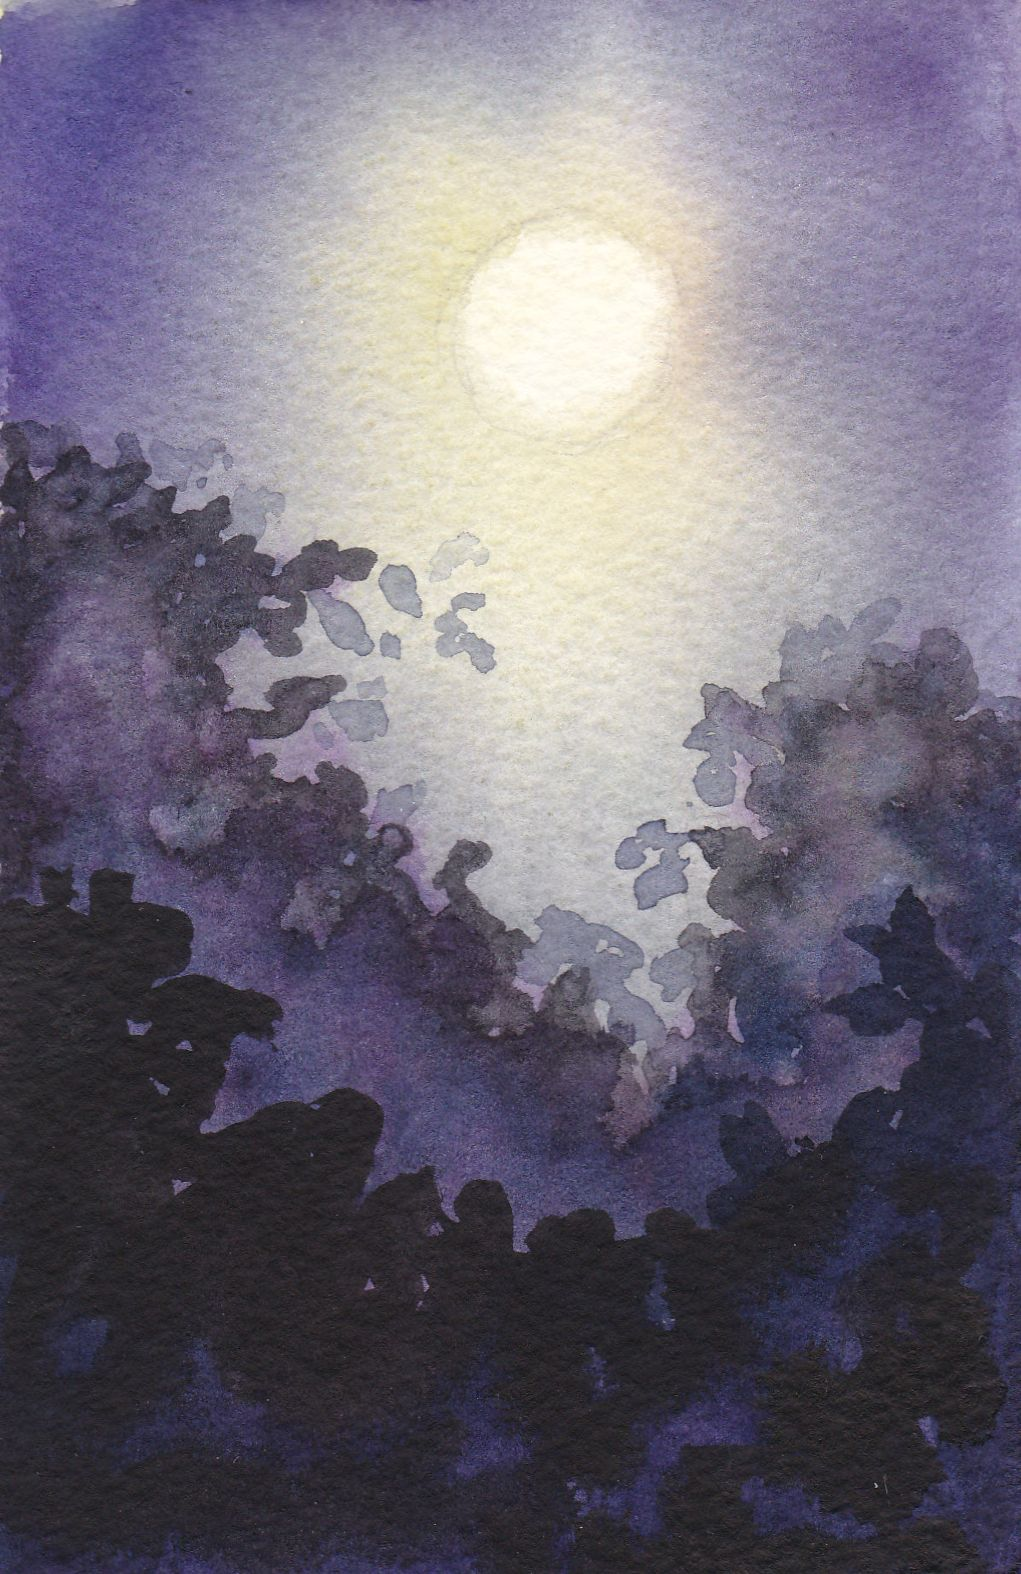 Mond bei Freunden. Aquarell, 10 x 15 cm. Moon and friends. Watercolours, 4 x 6 in.